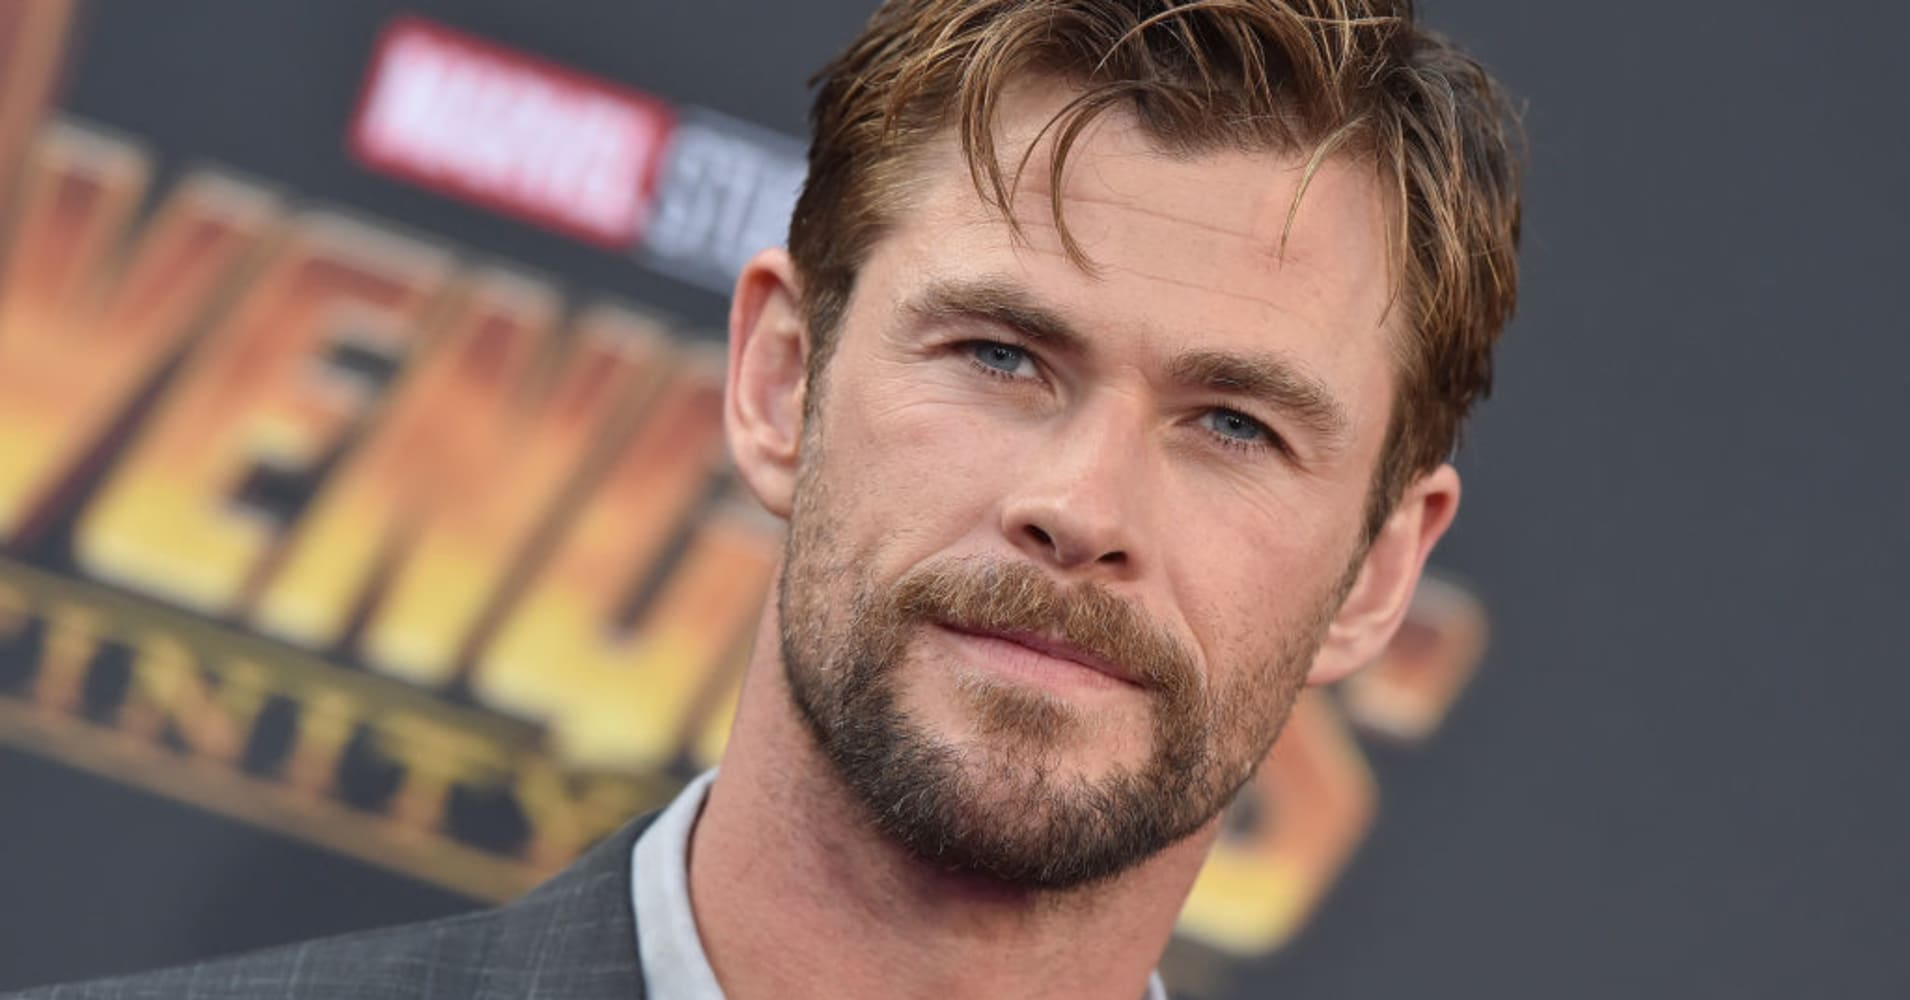 Actor Chris Hemsworth attends the premiere of Disney and Marvel's 'Avengers: Infinity War' on April 23, 2018 in Hollywood, California.